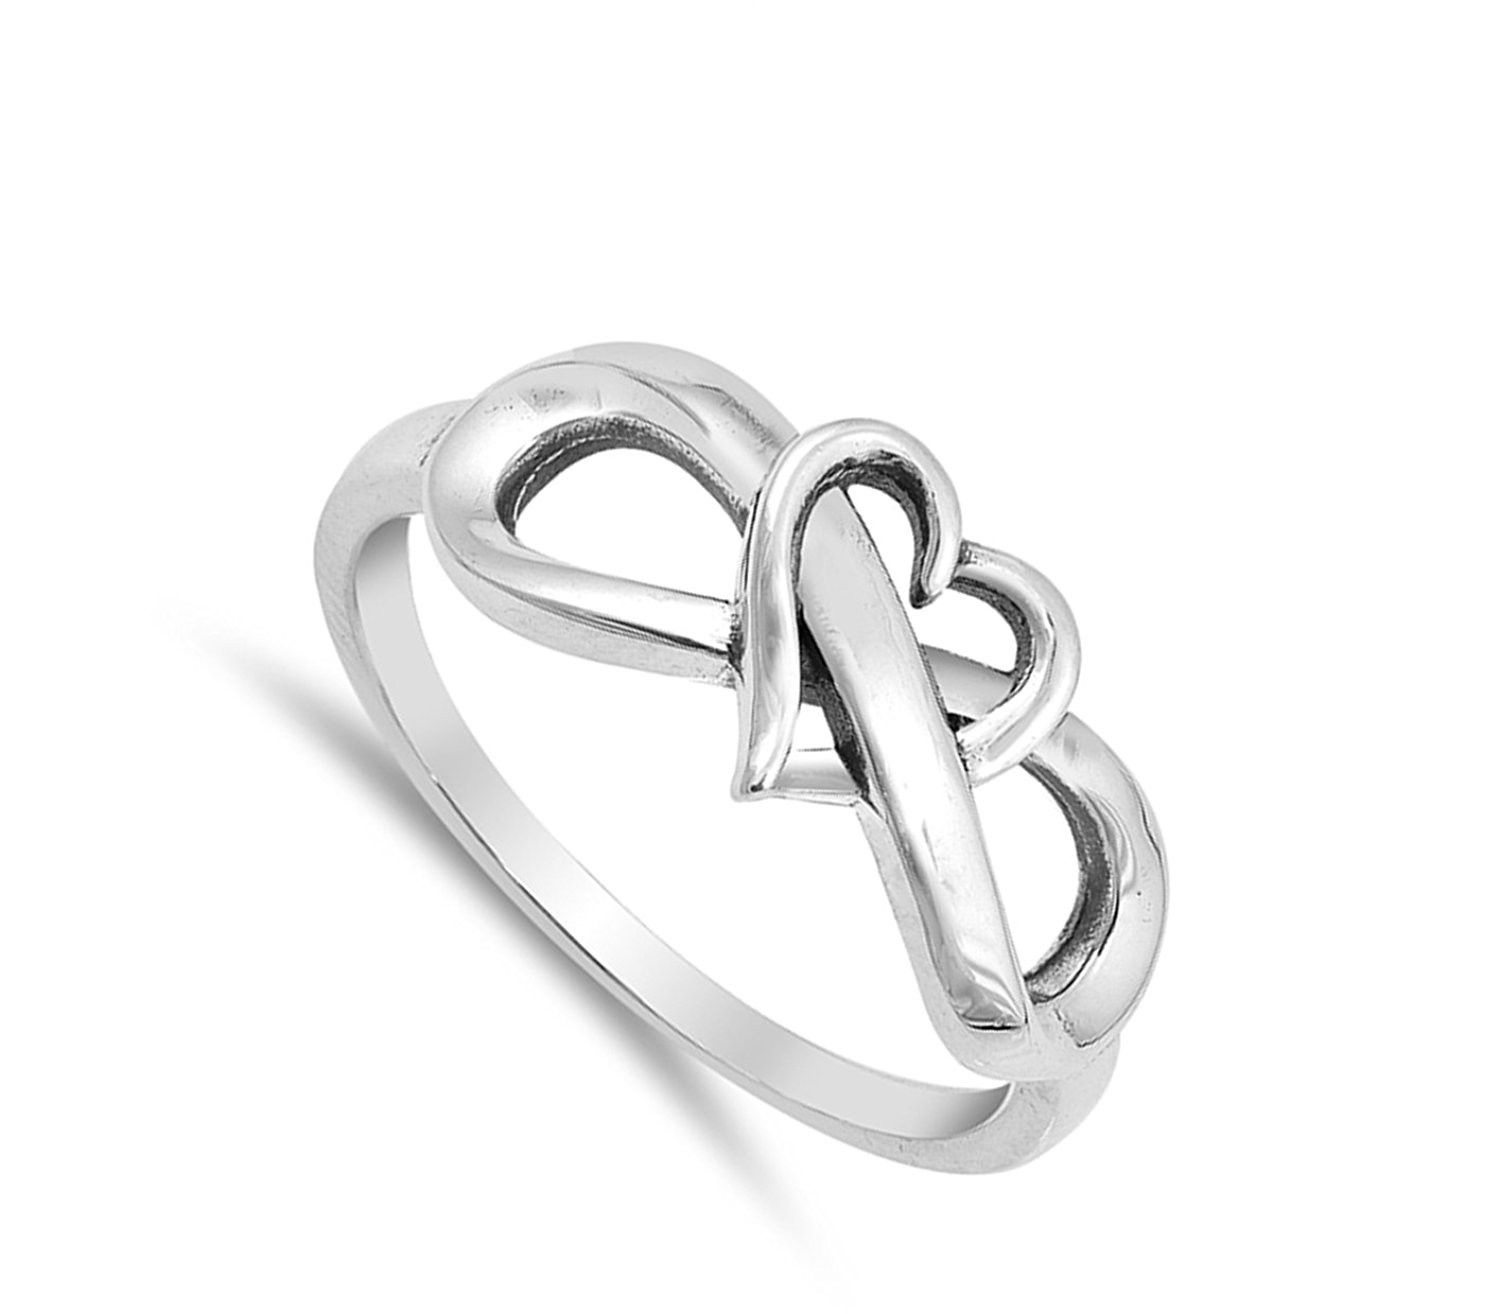 600fbede8fdf8 CHOOSE YOUR COLOR Sterling Silver Infinity Love Knot Heart Promise ...